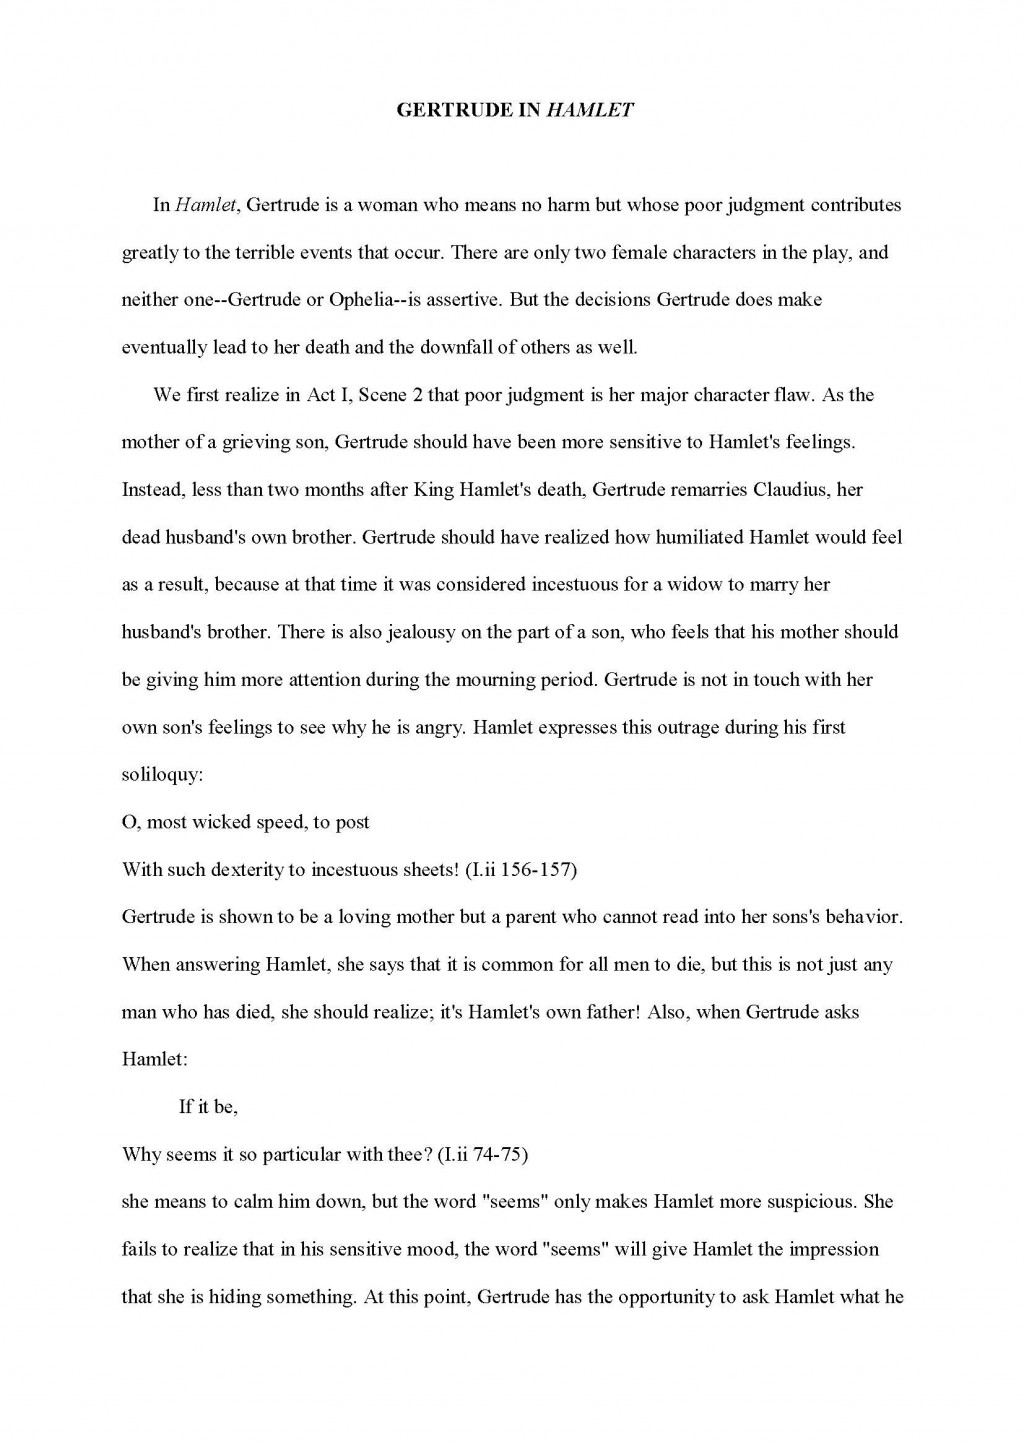 004 Analysis Essay Sample Example How To Write Formidable A Literary Literature Conclusion Step By Ppt Good English Introduction Large